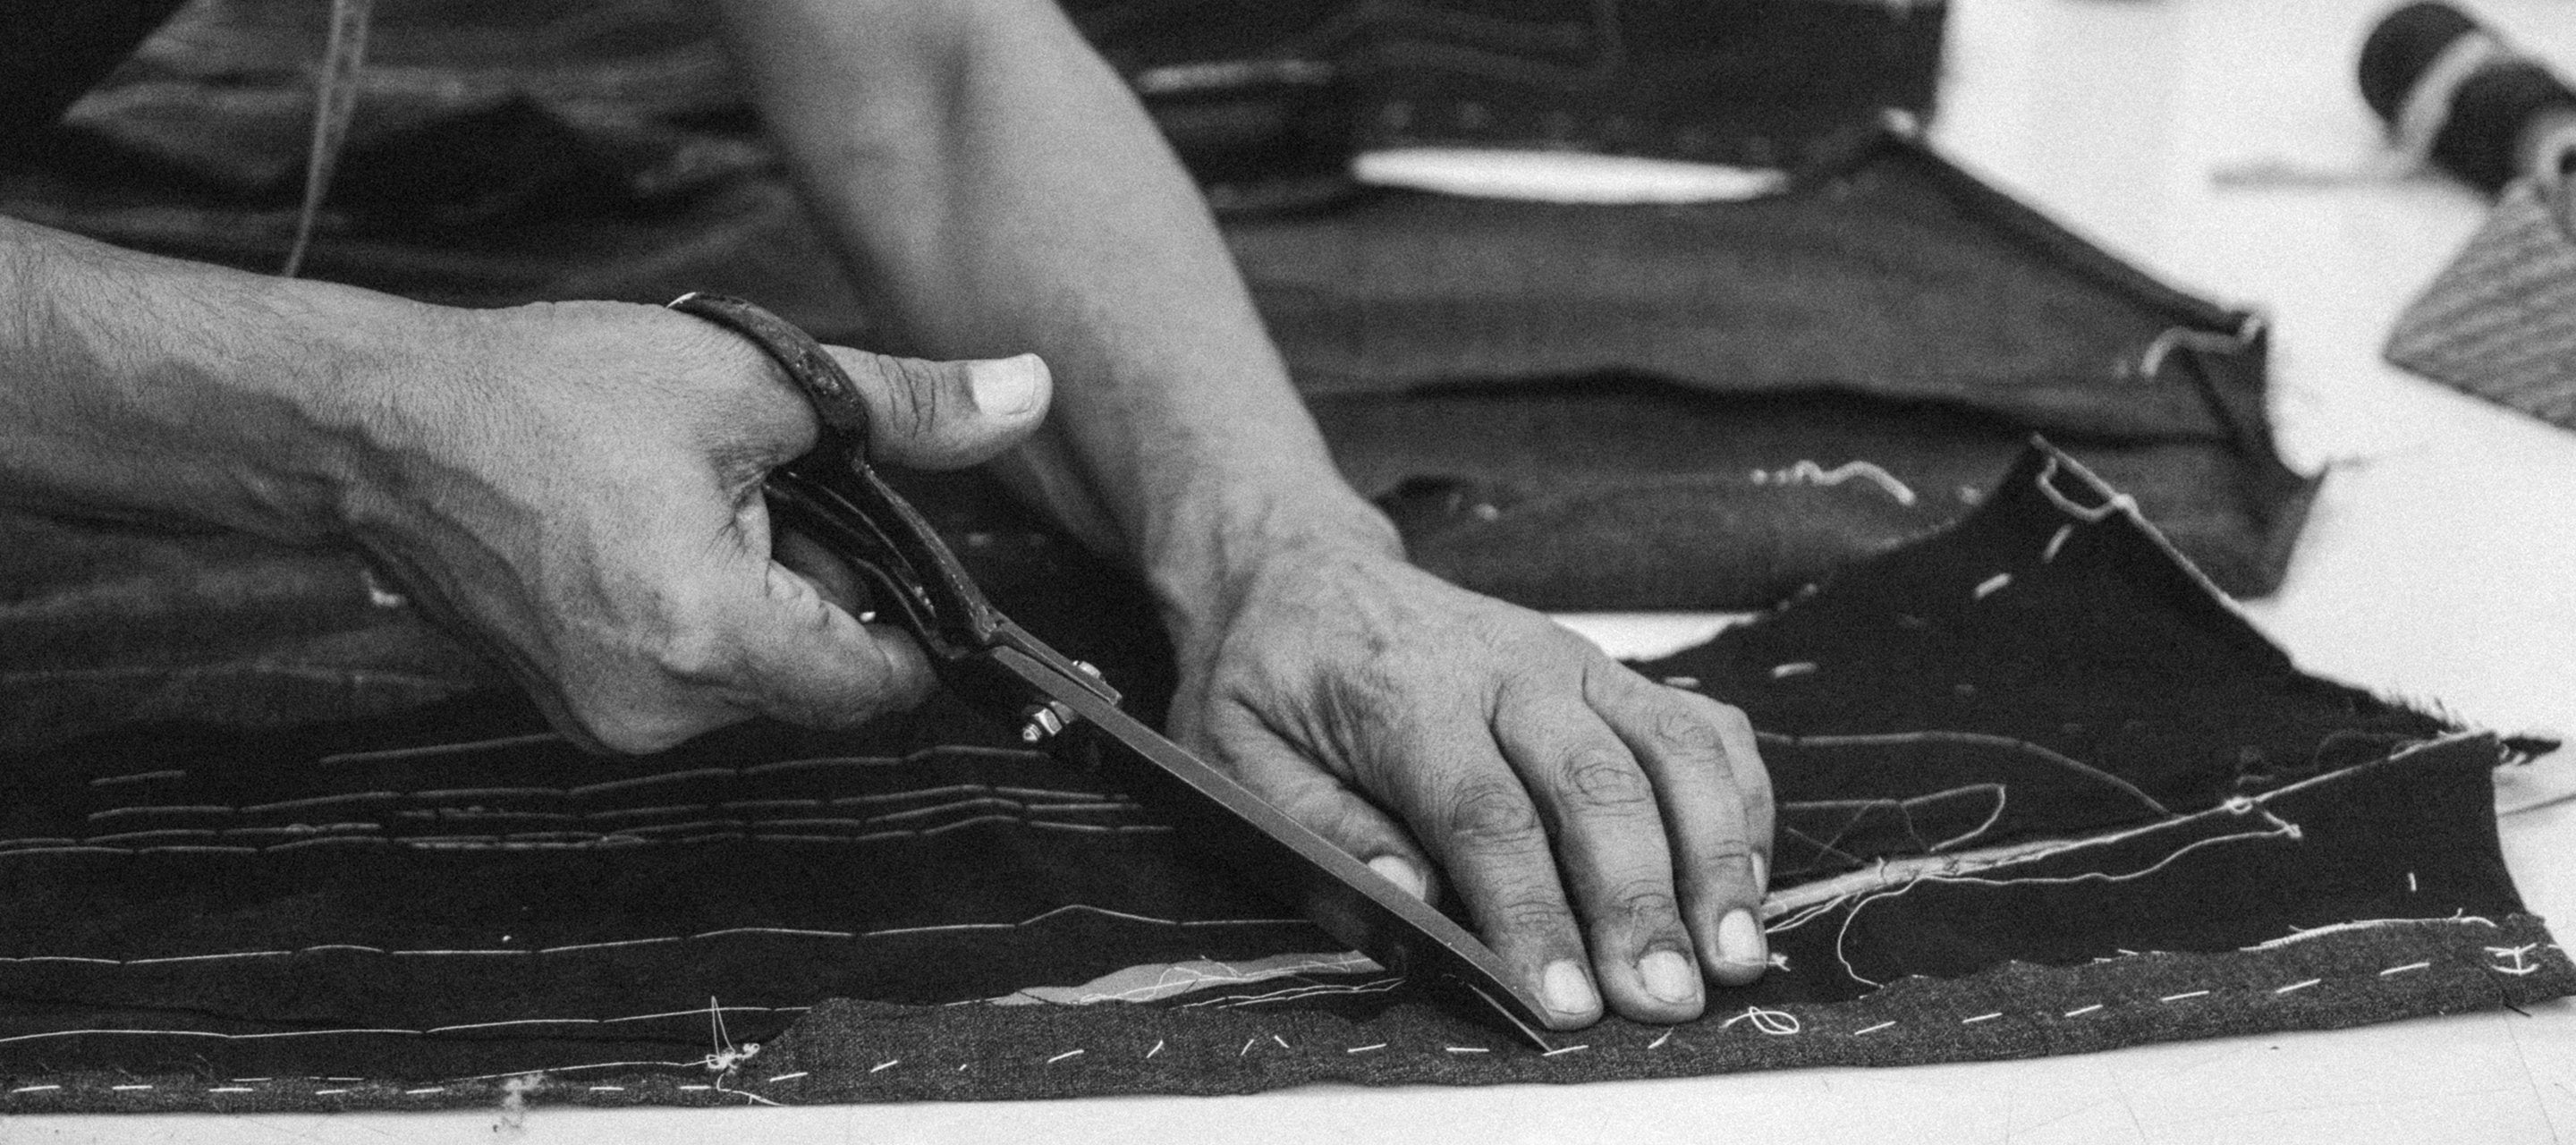 BENCH MADE BESPOKE SUITS